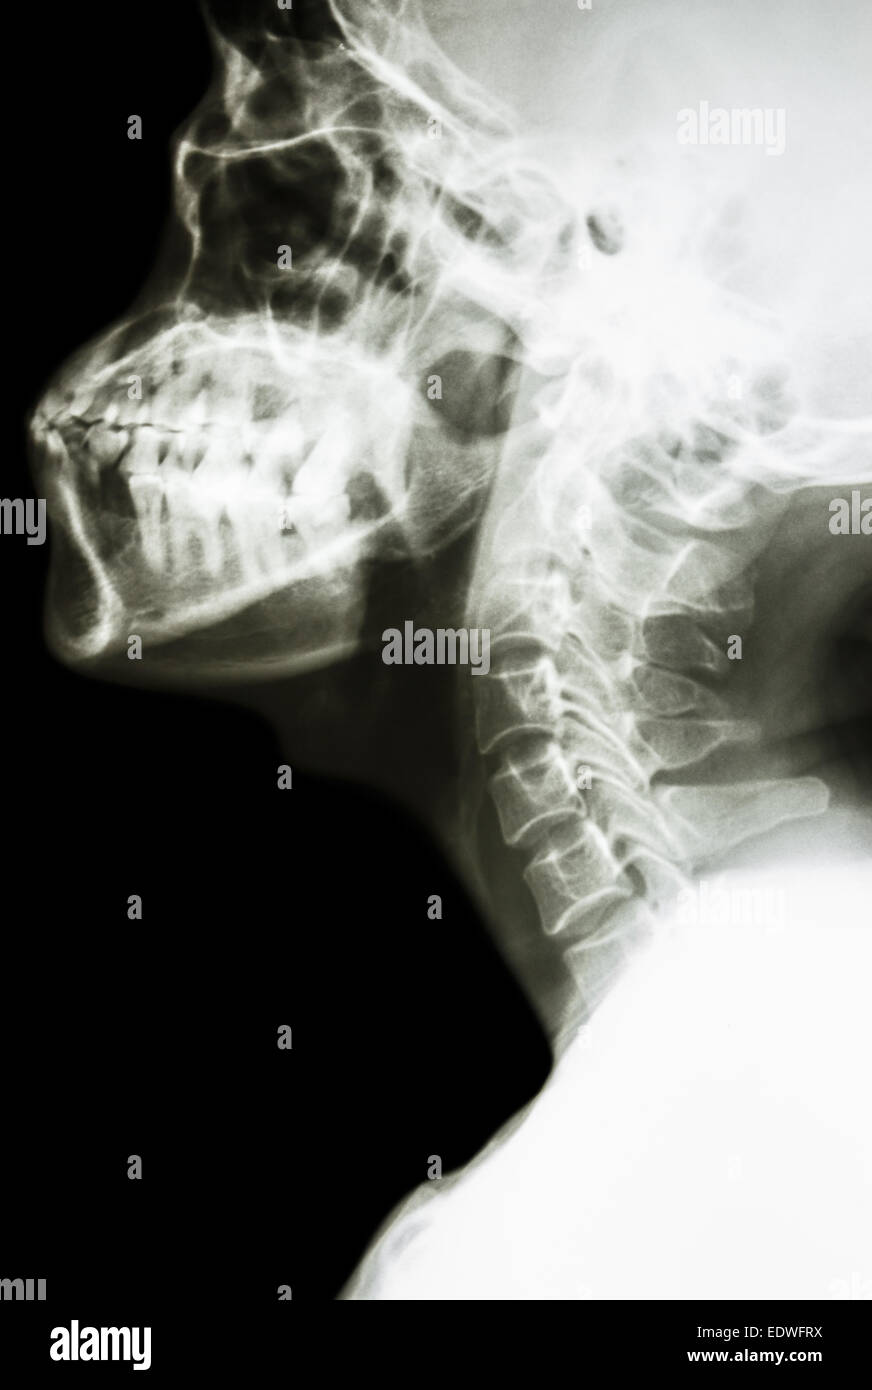 Normal Neck X Ray Stock Photos & Normal Neck X Ray Stock Images - Alamy